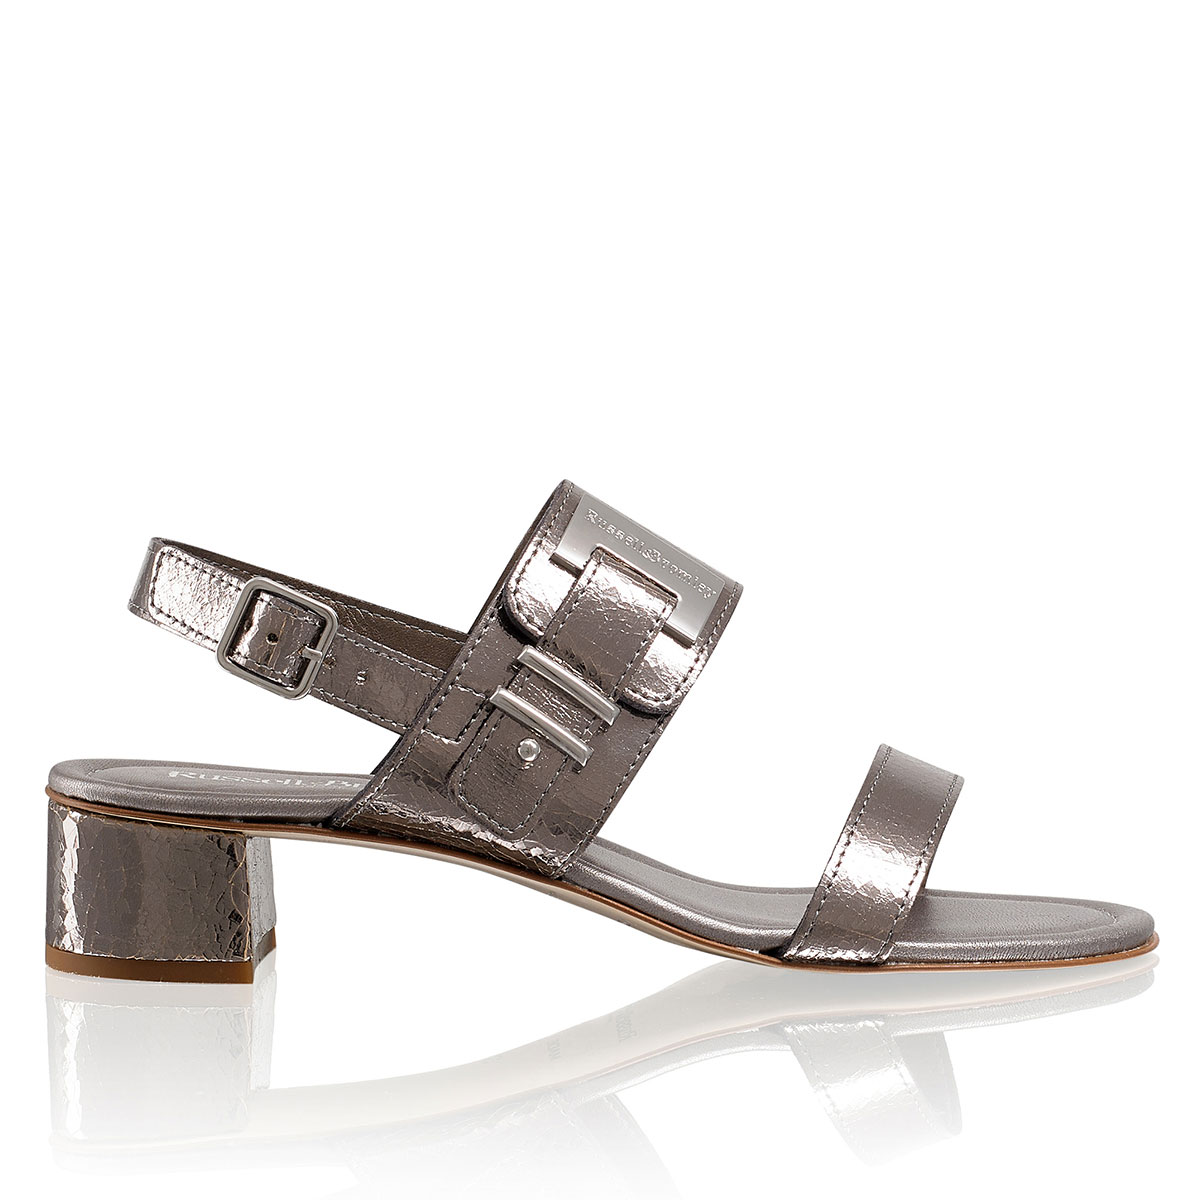 Russell and Bromley HOT PLATE Block Heel Sandal